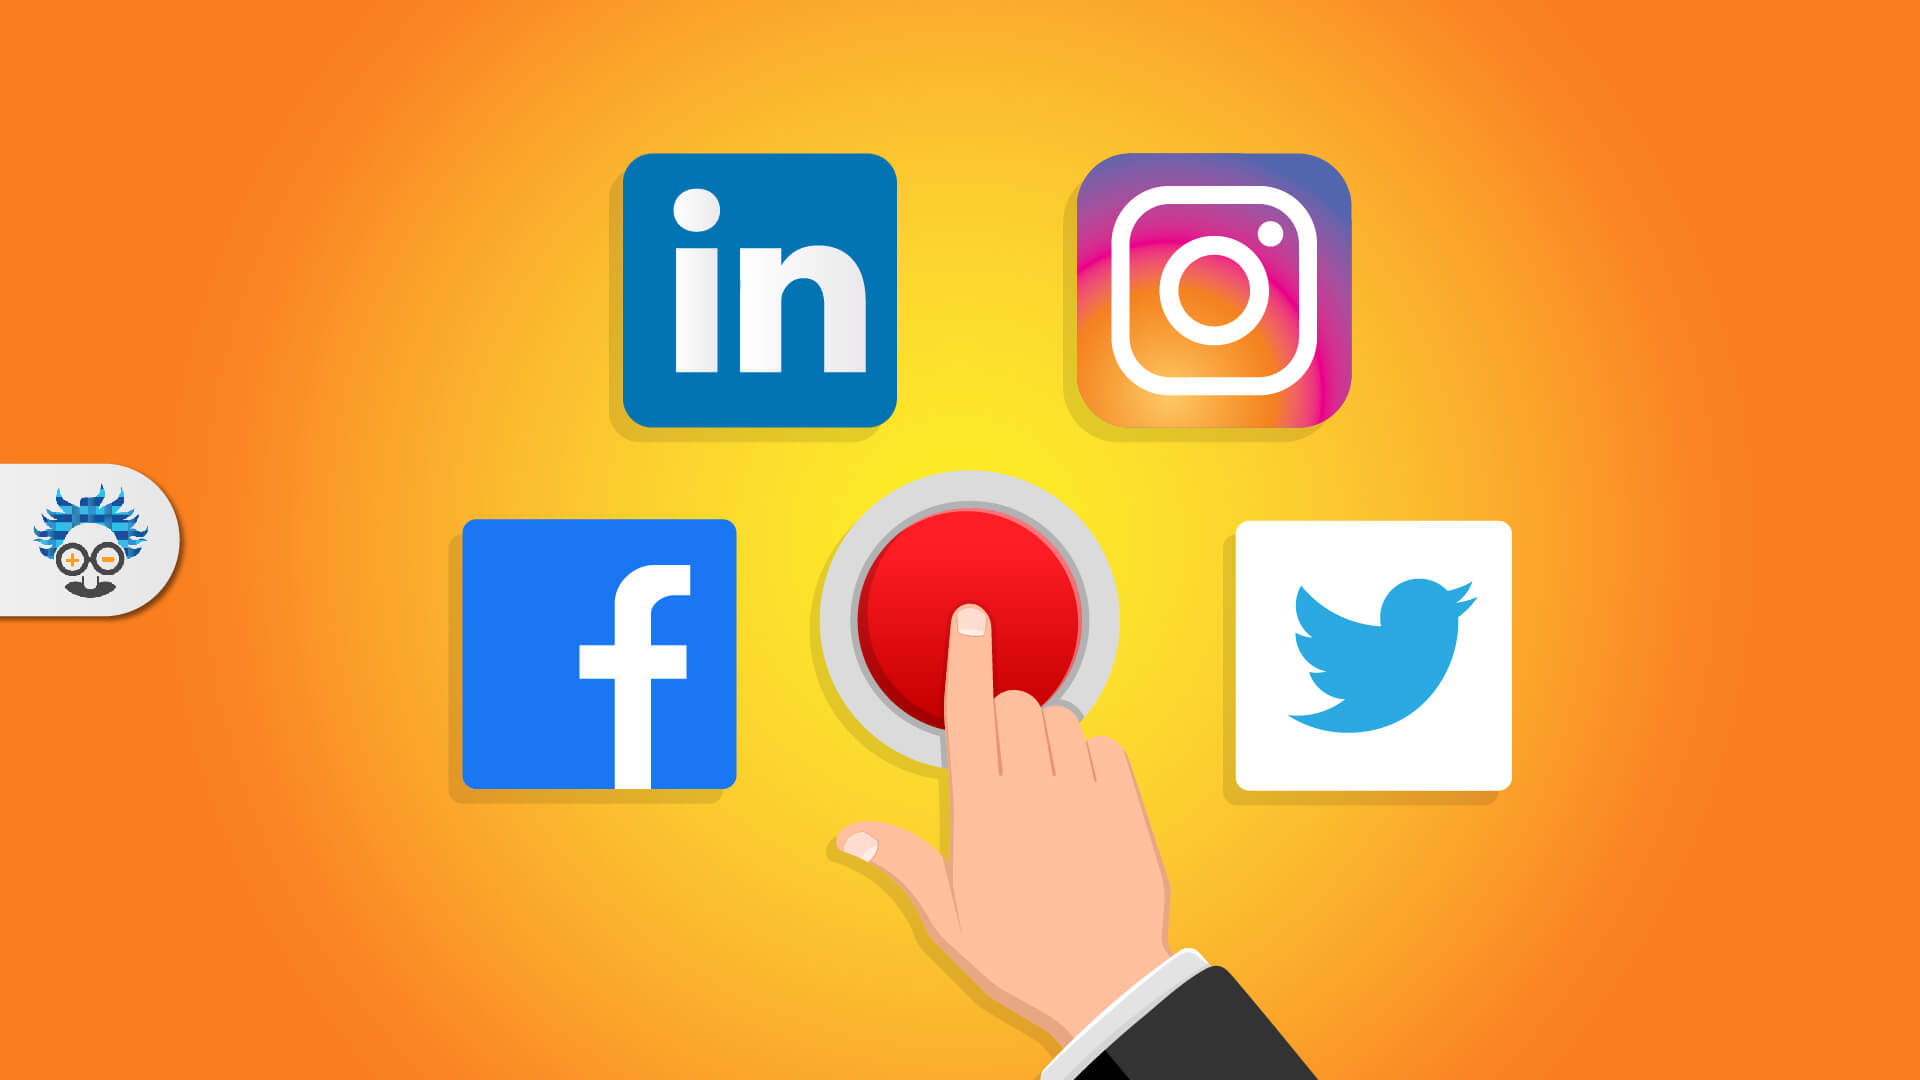 how to get followers on social